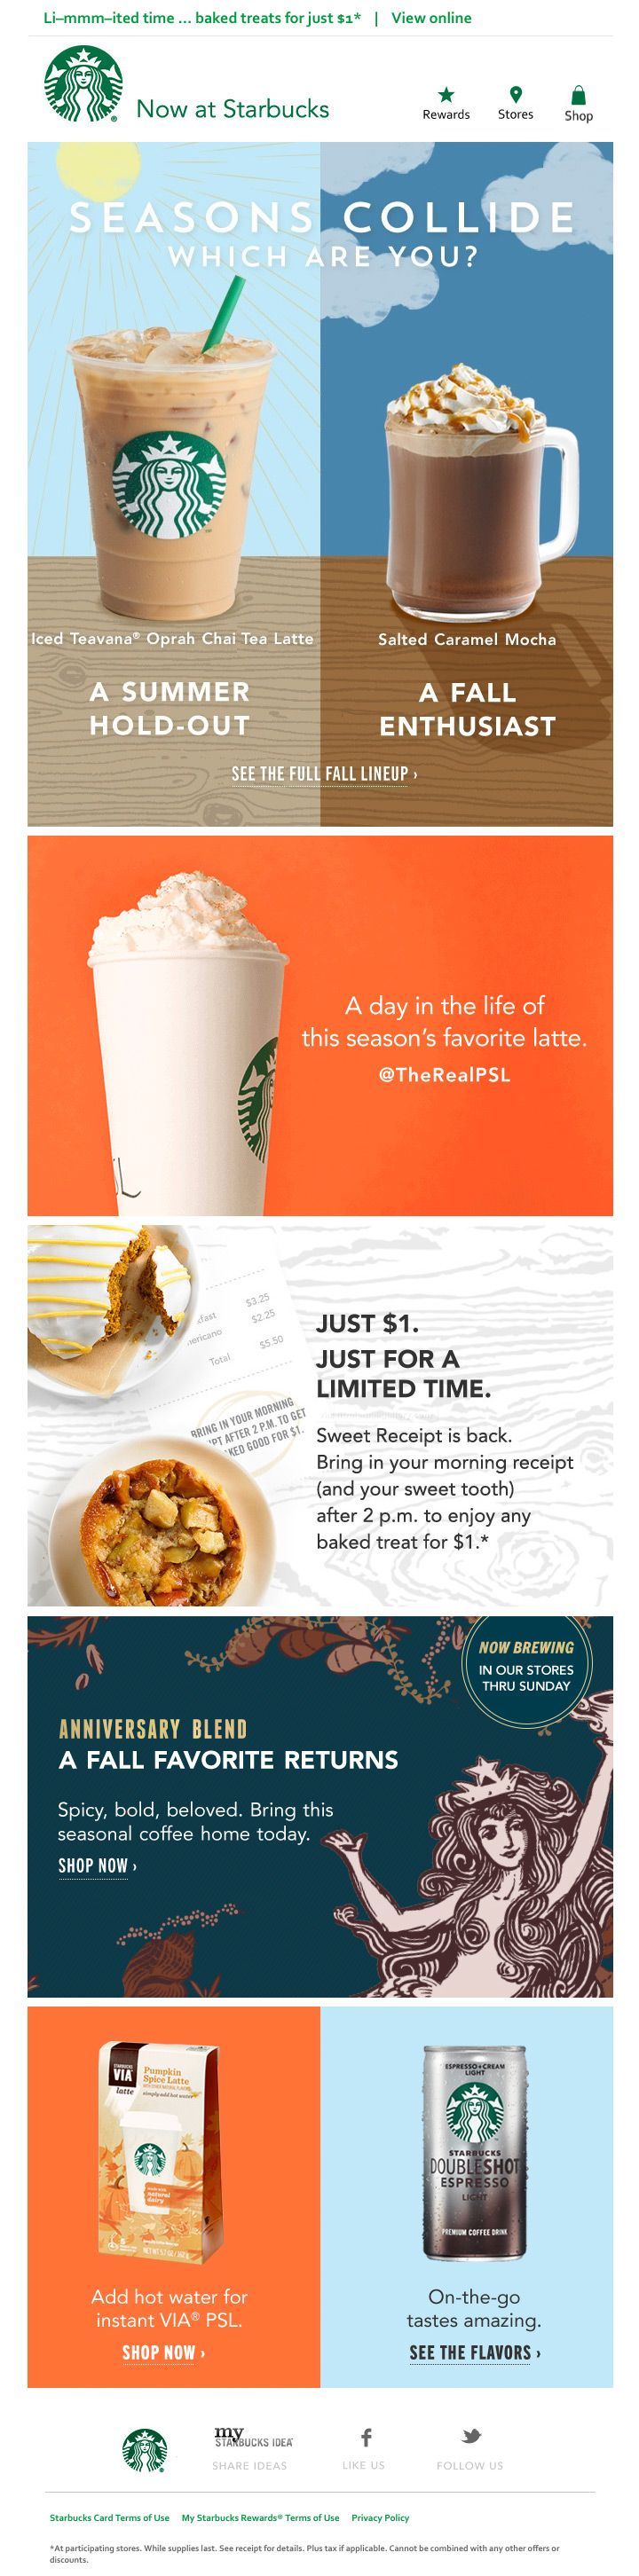 Starbucks Fall email